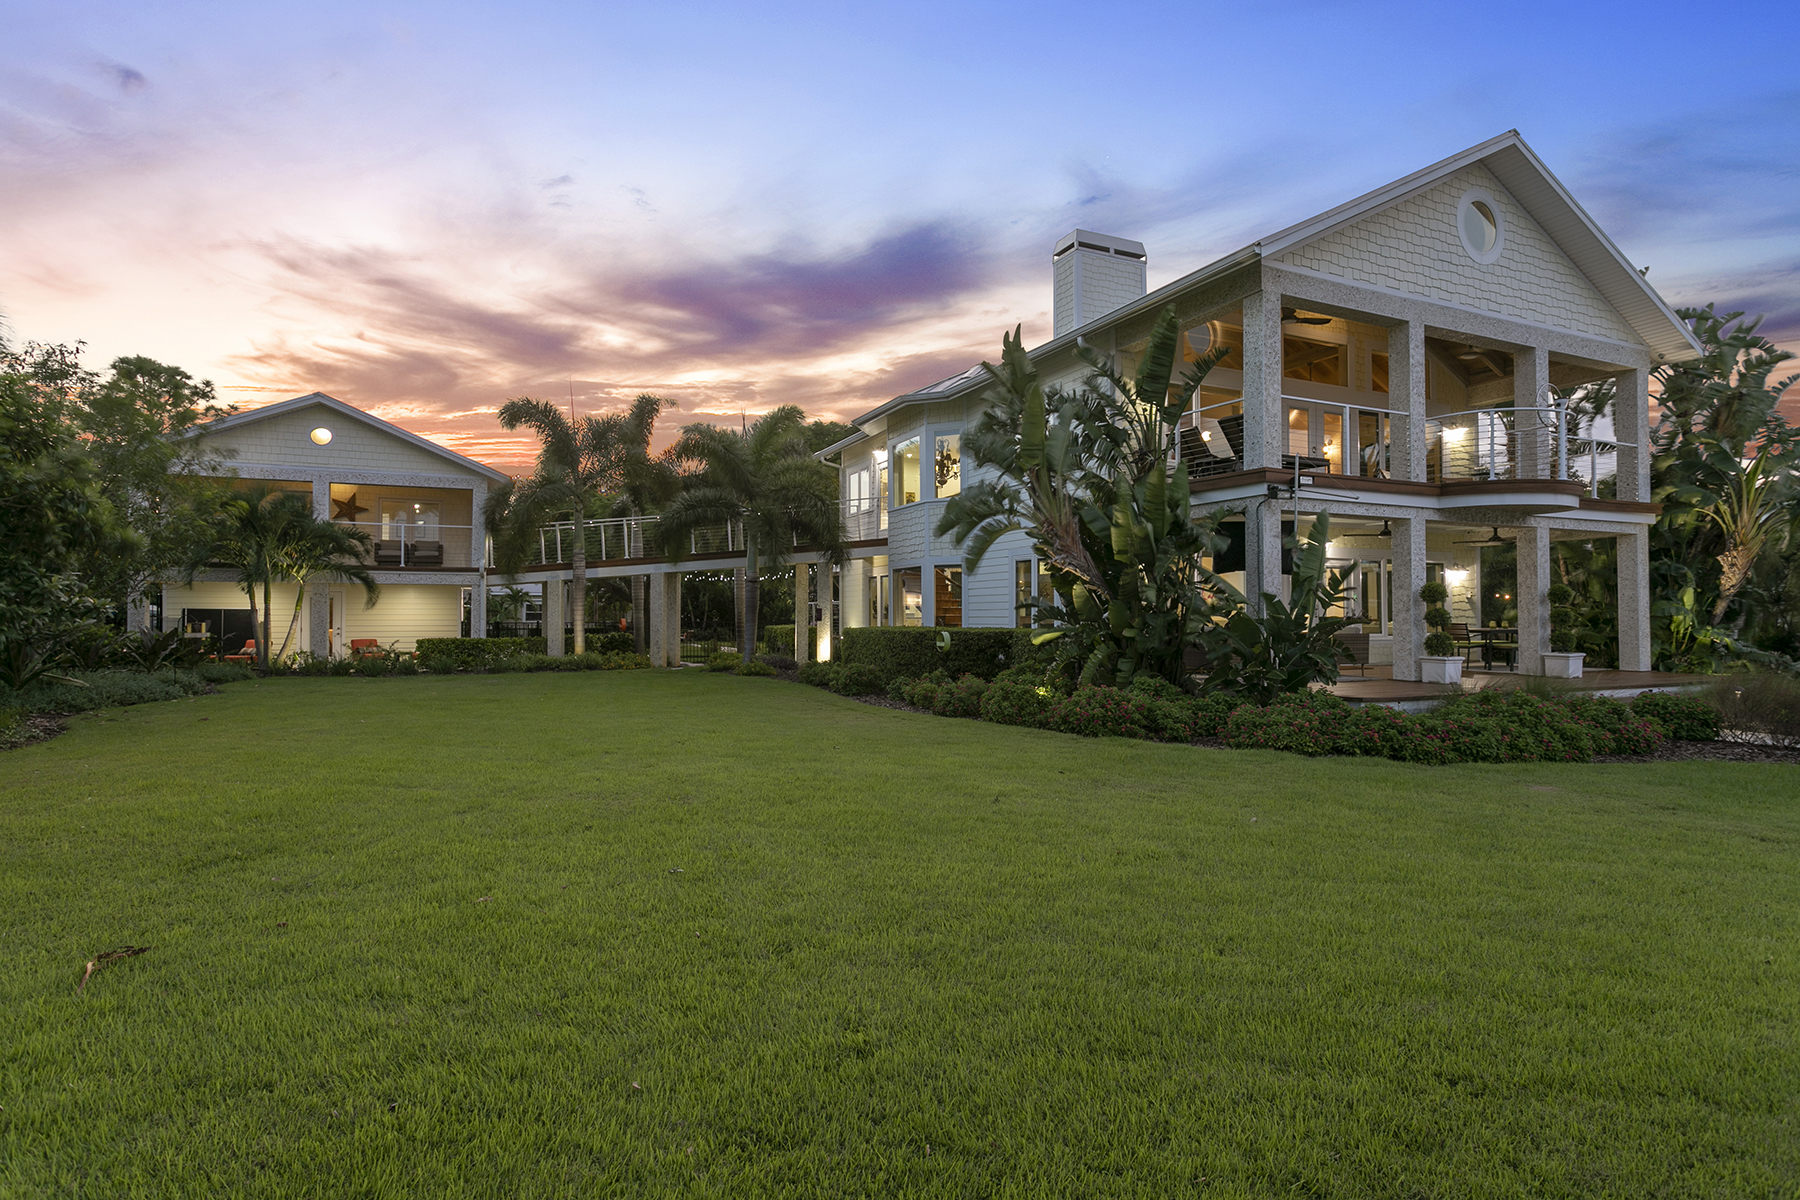 Single Family Homes for Active at 1803 Beach Dr St. Petersburg, Florida 33705 United States